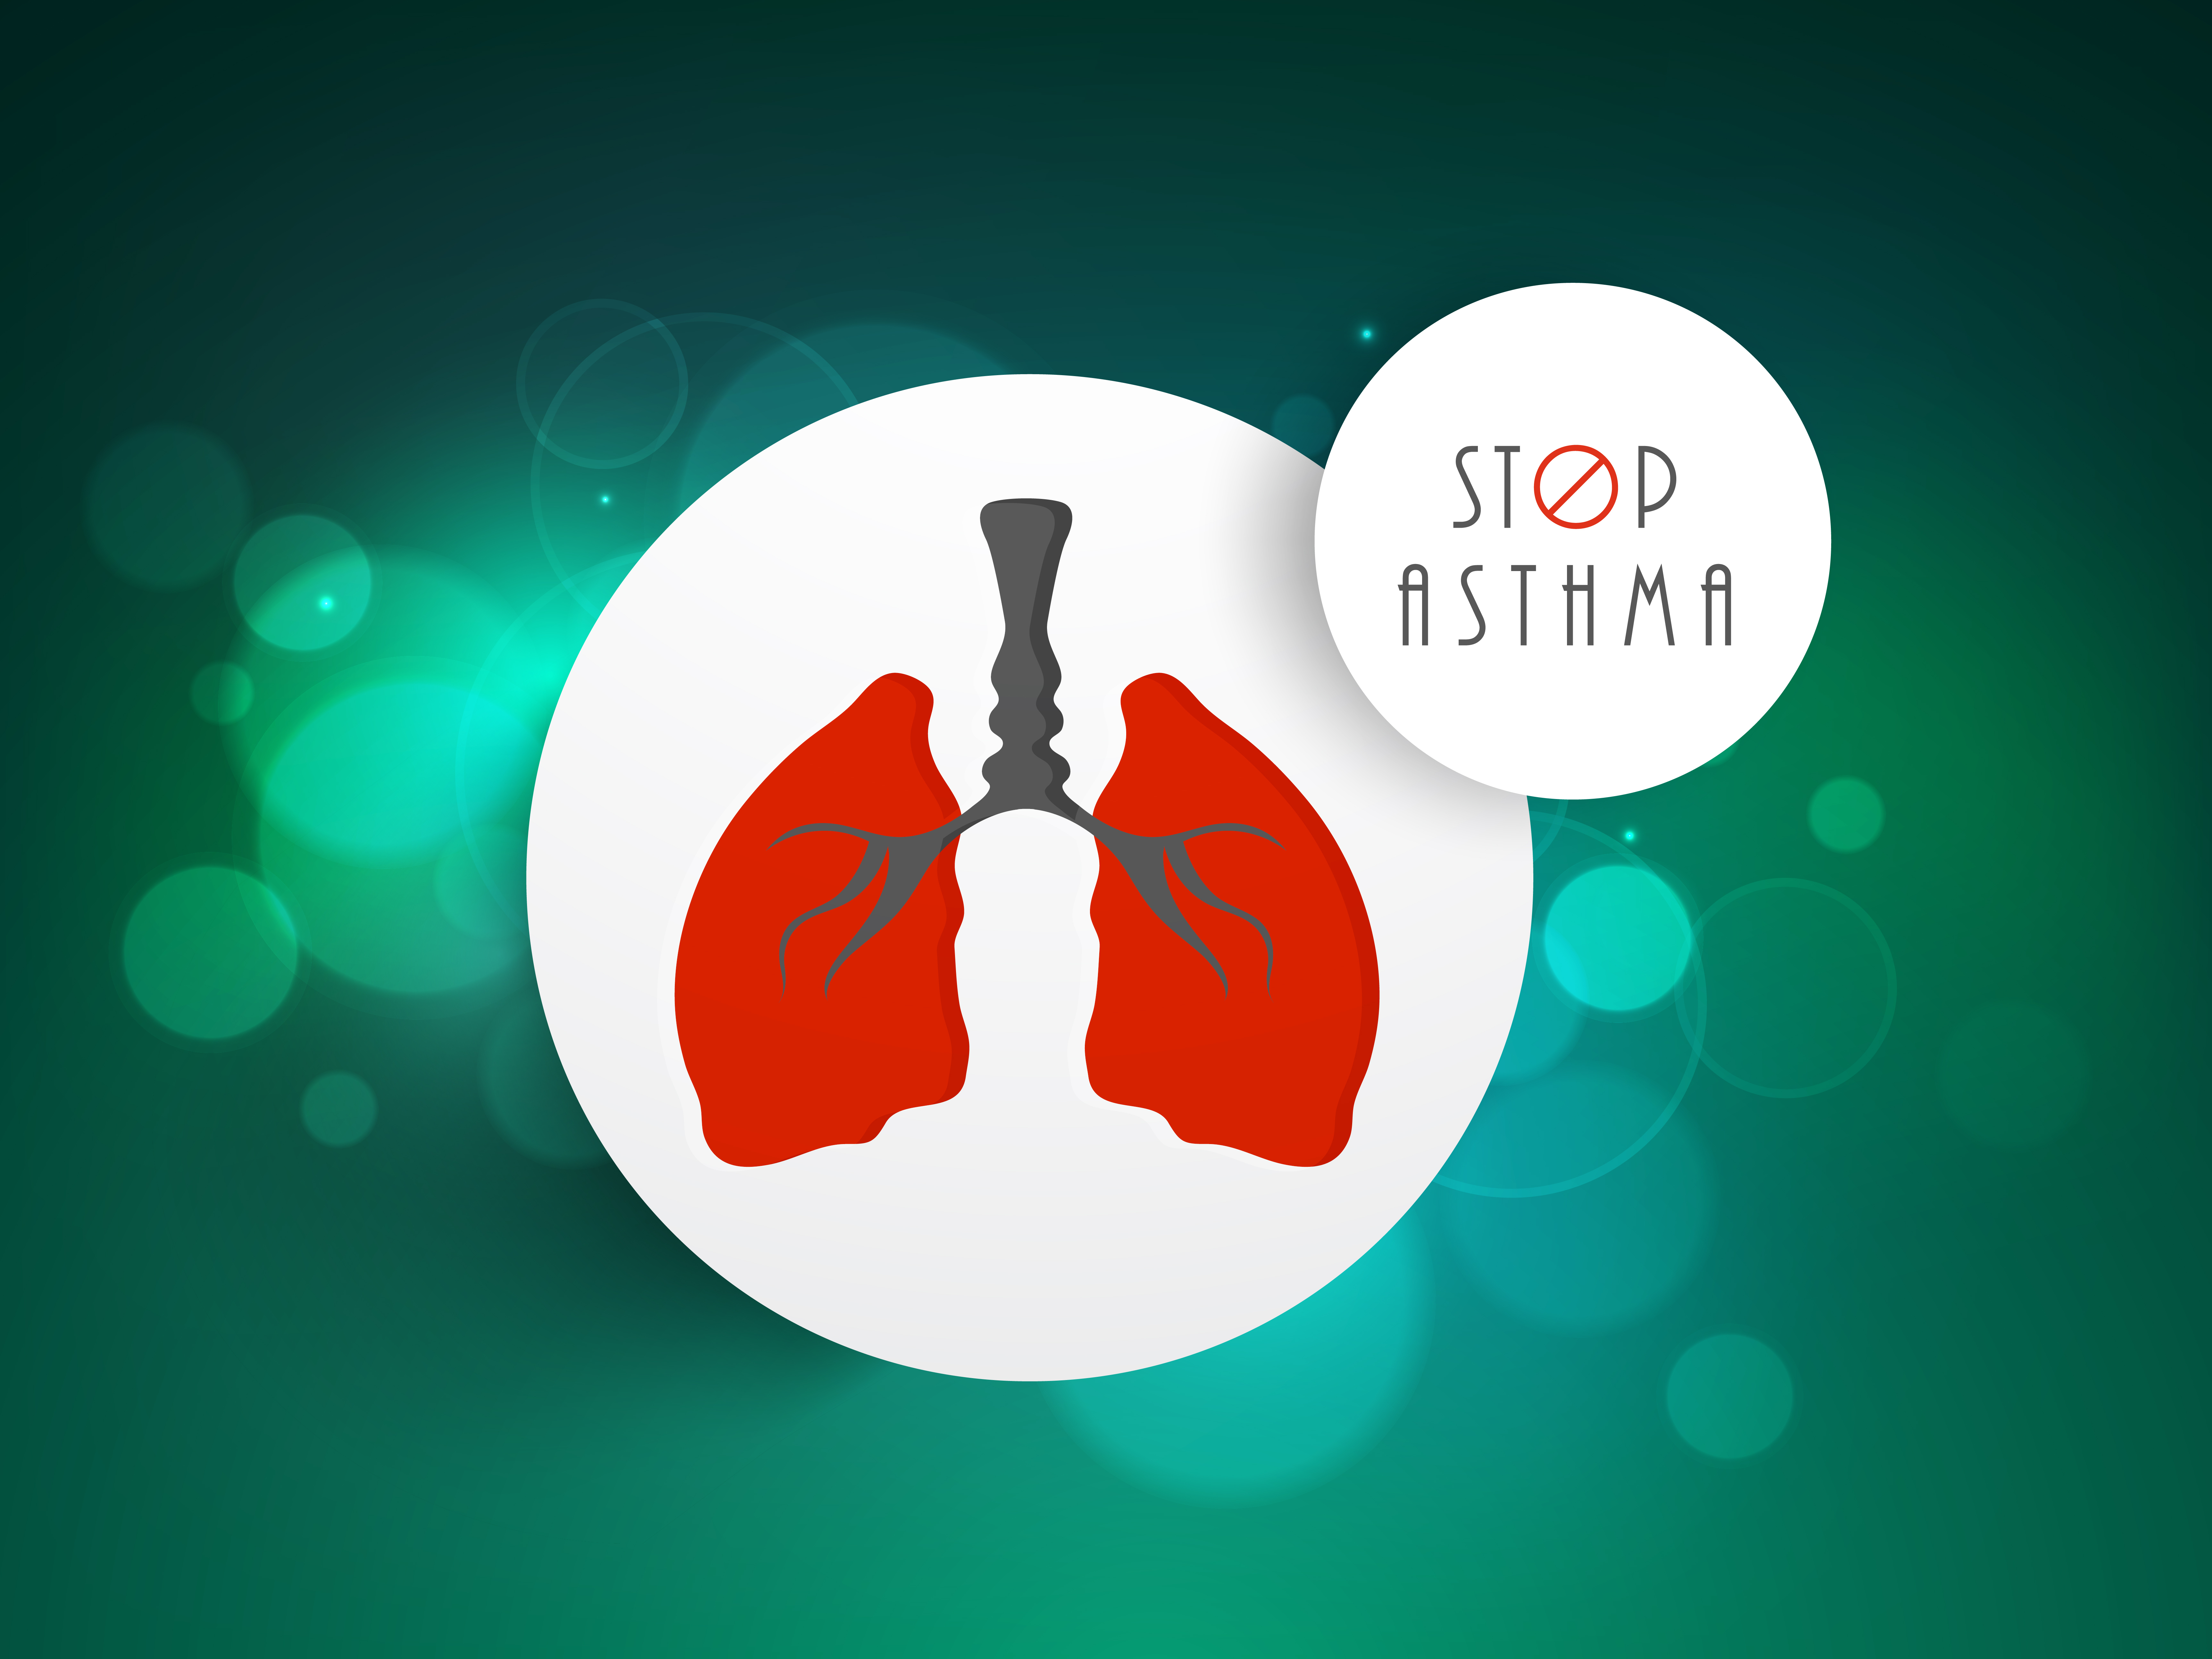 IL2 cells express factor that targets cells for potential anti-asthma therapeutics